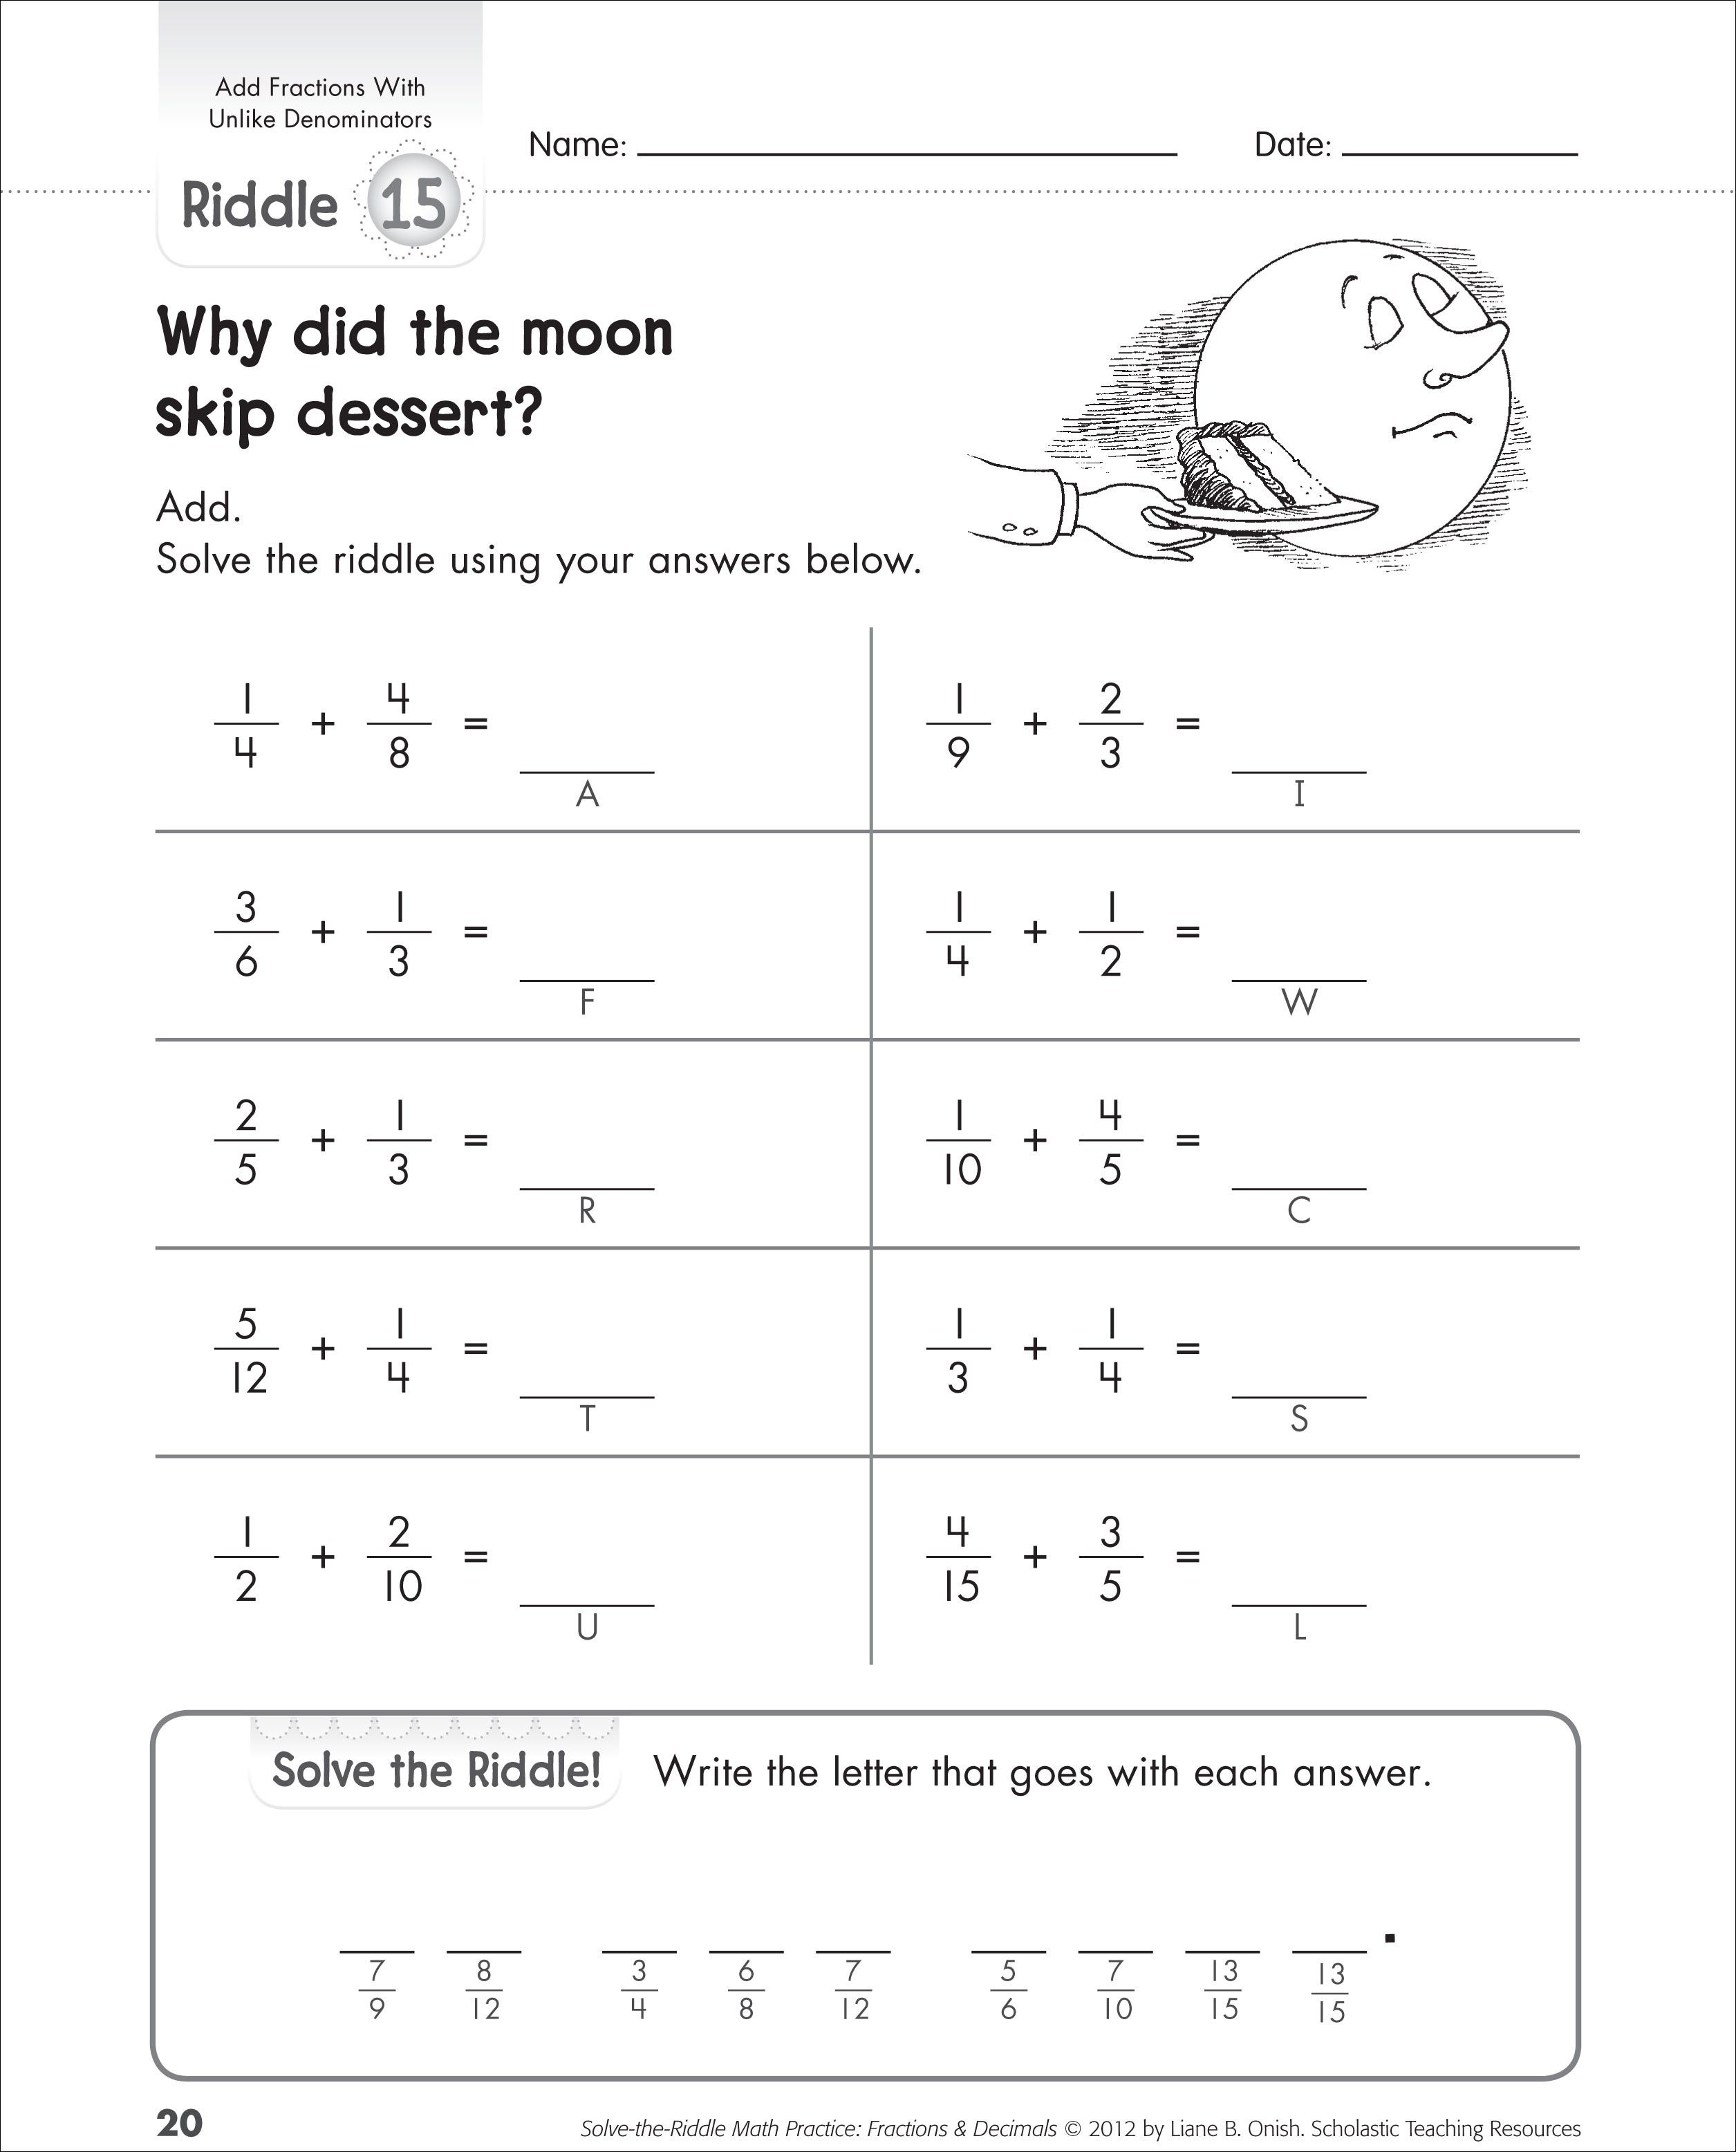 Addition Of Fractions And Riddles